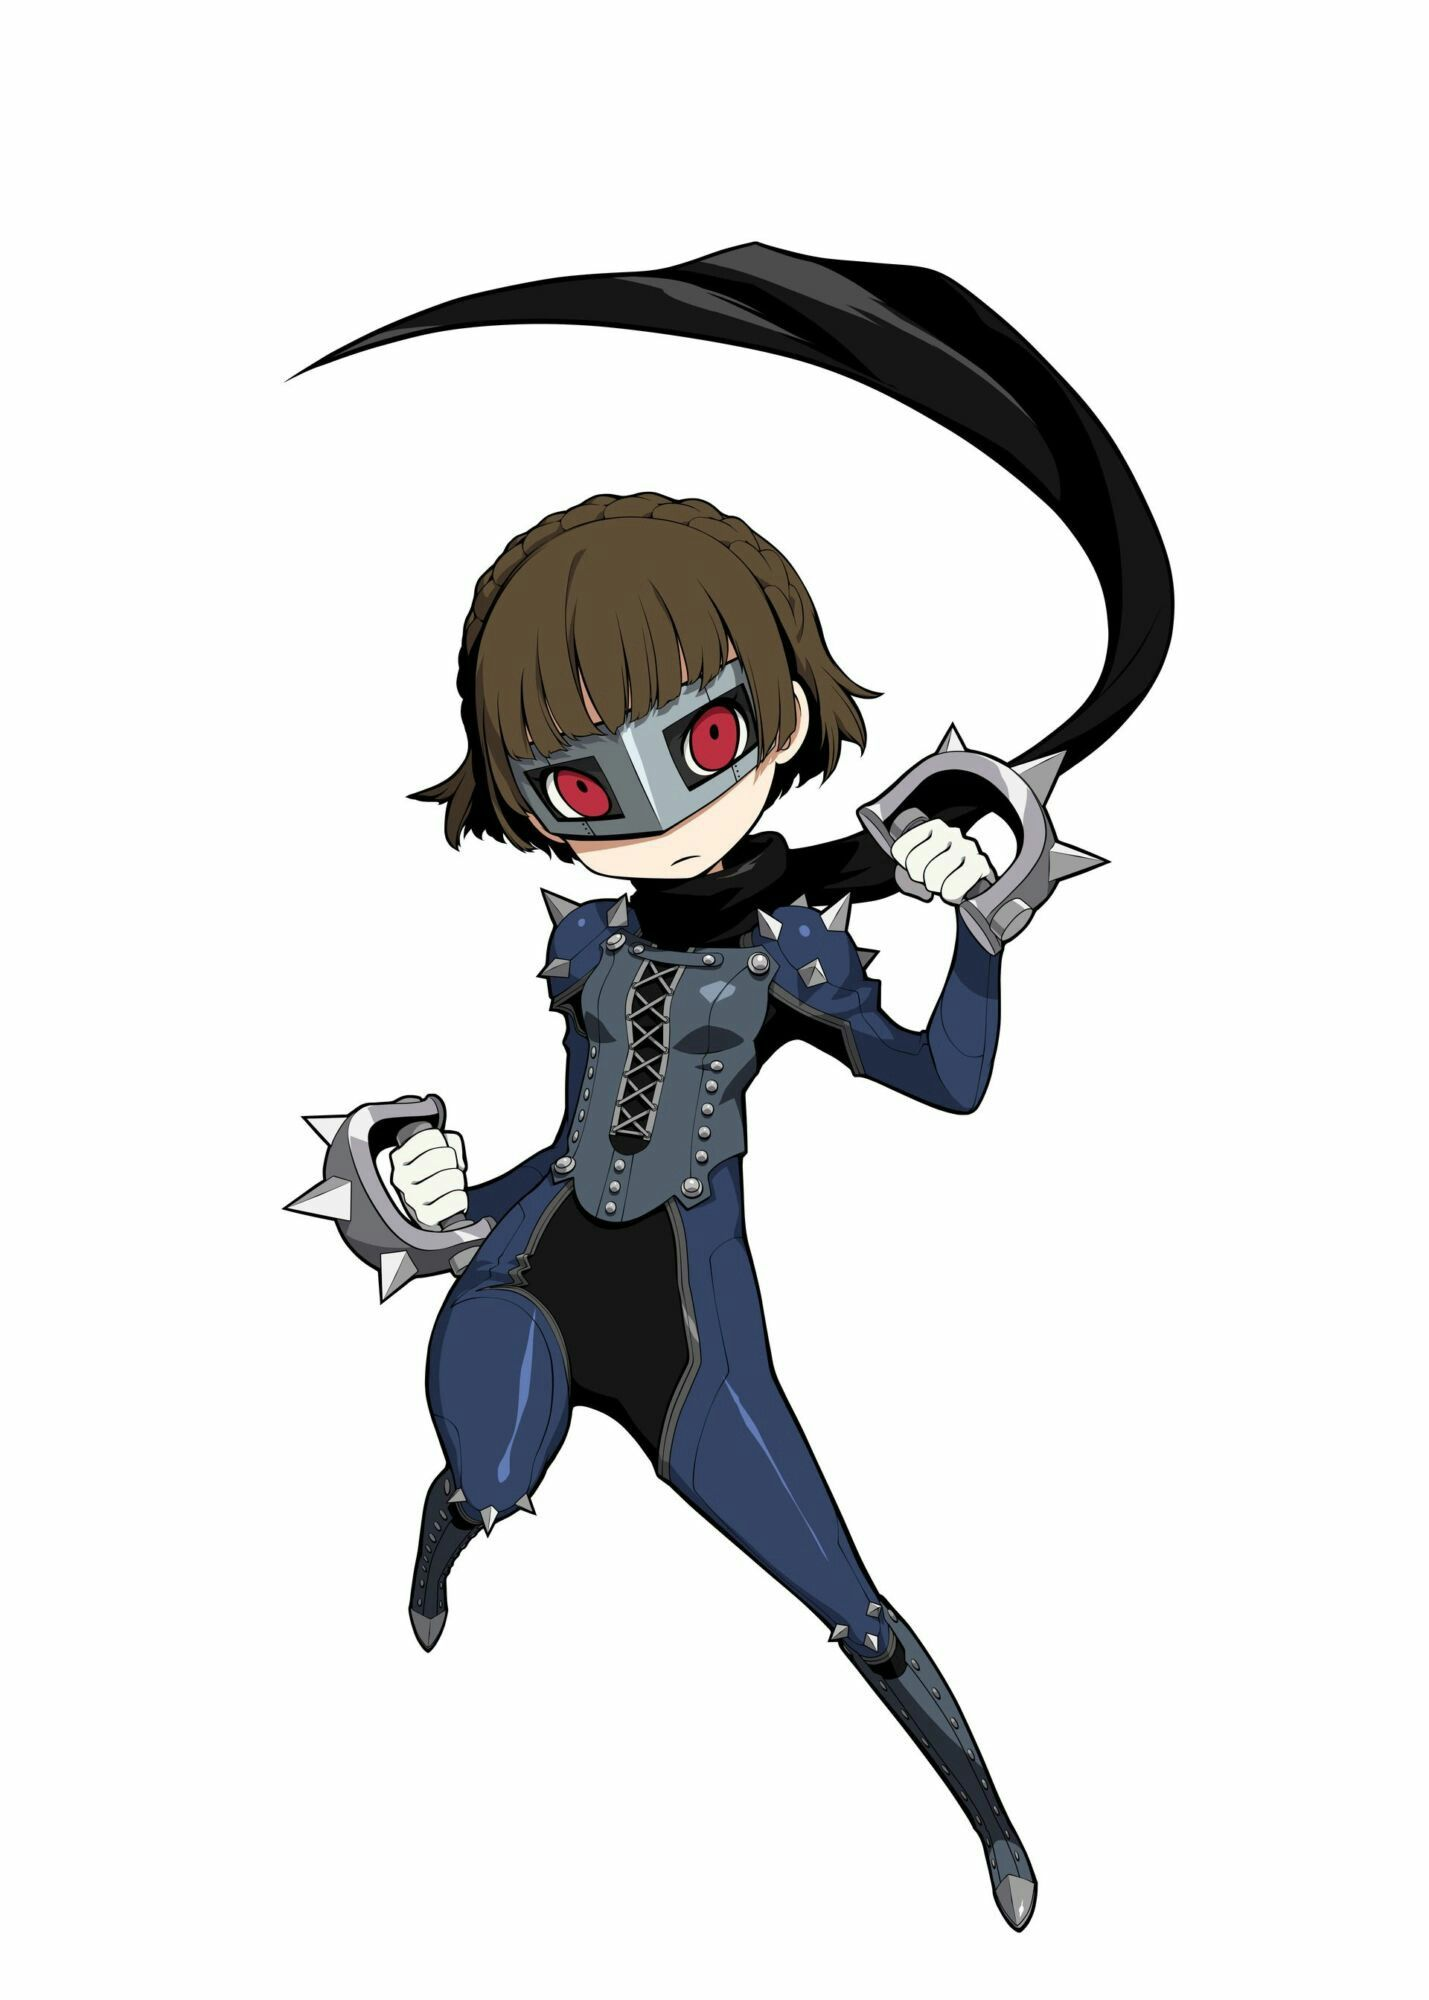 Persona Q2 - Queen | Gamer & Anime Art wallpapers | Persona 5